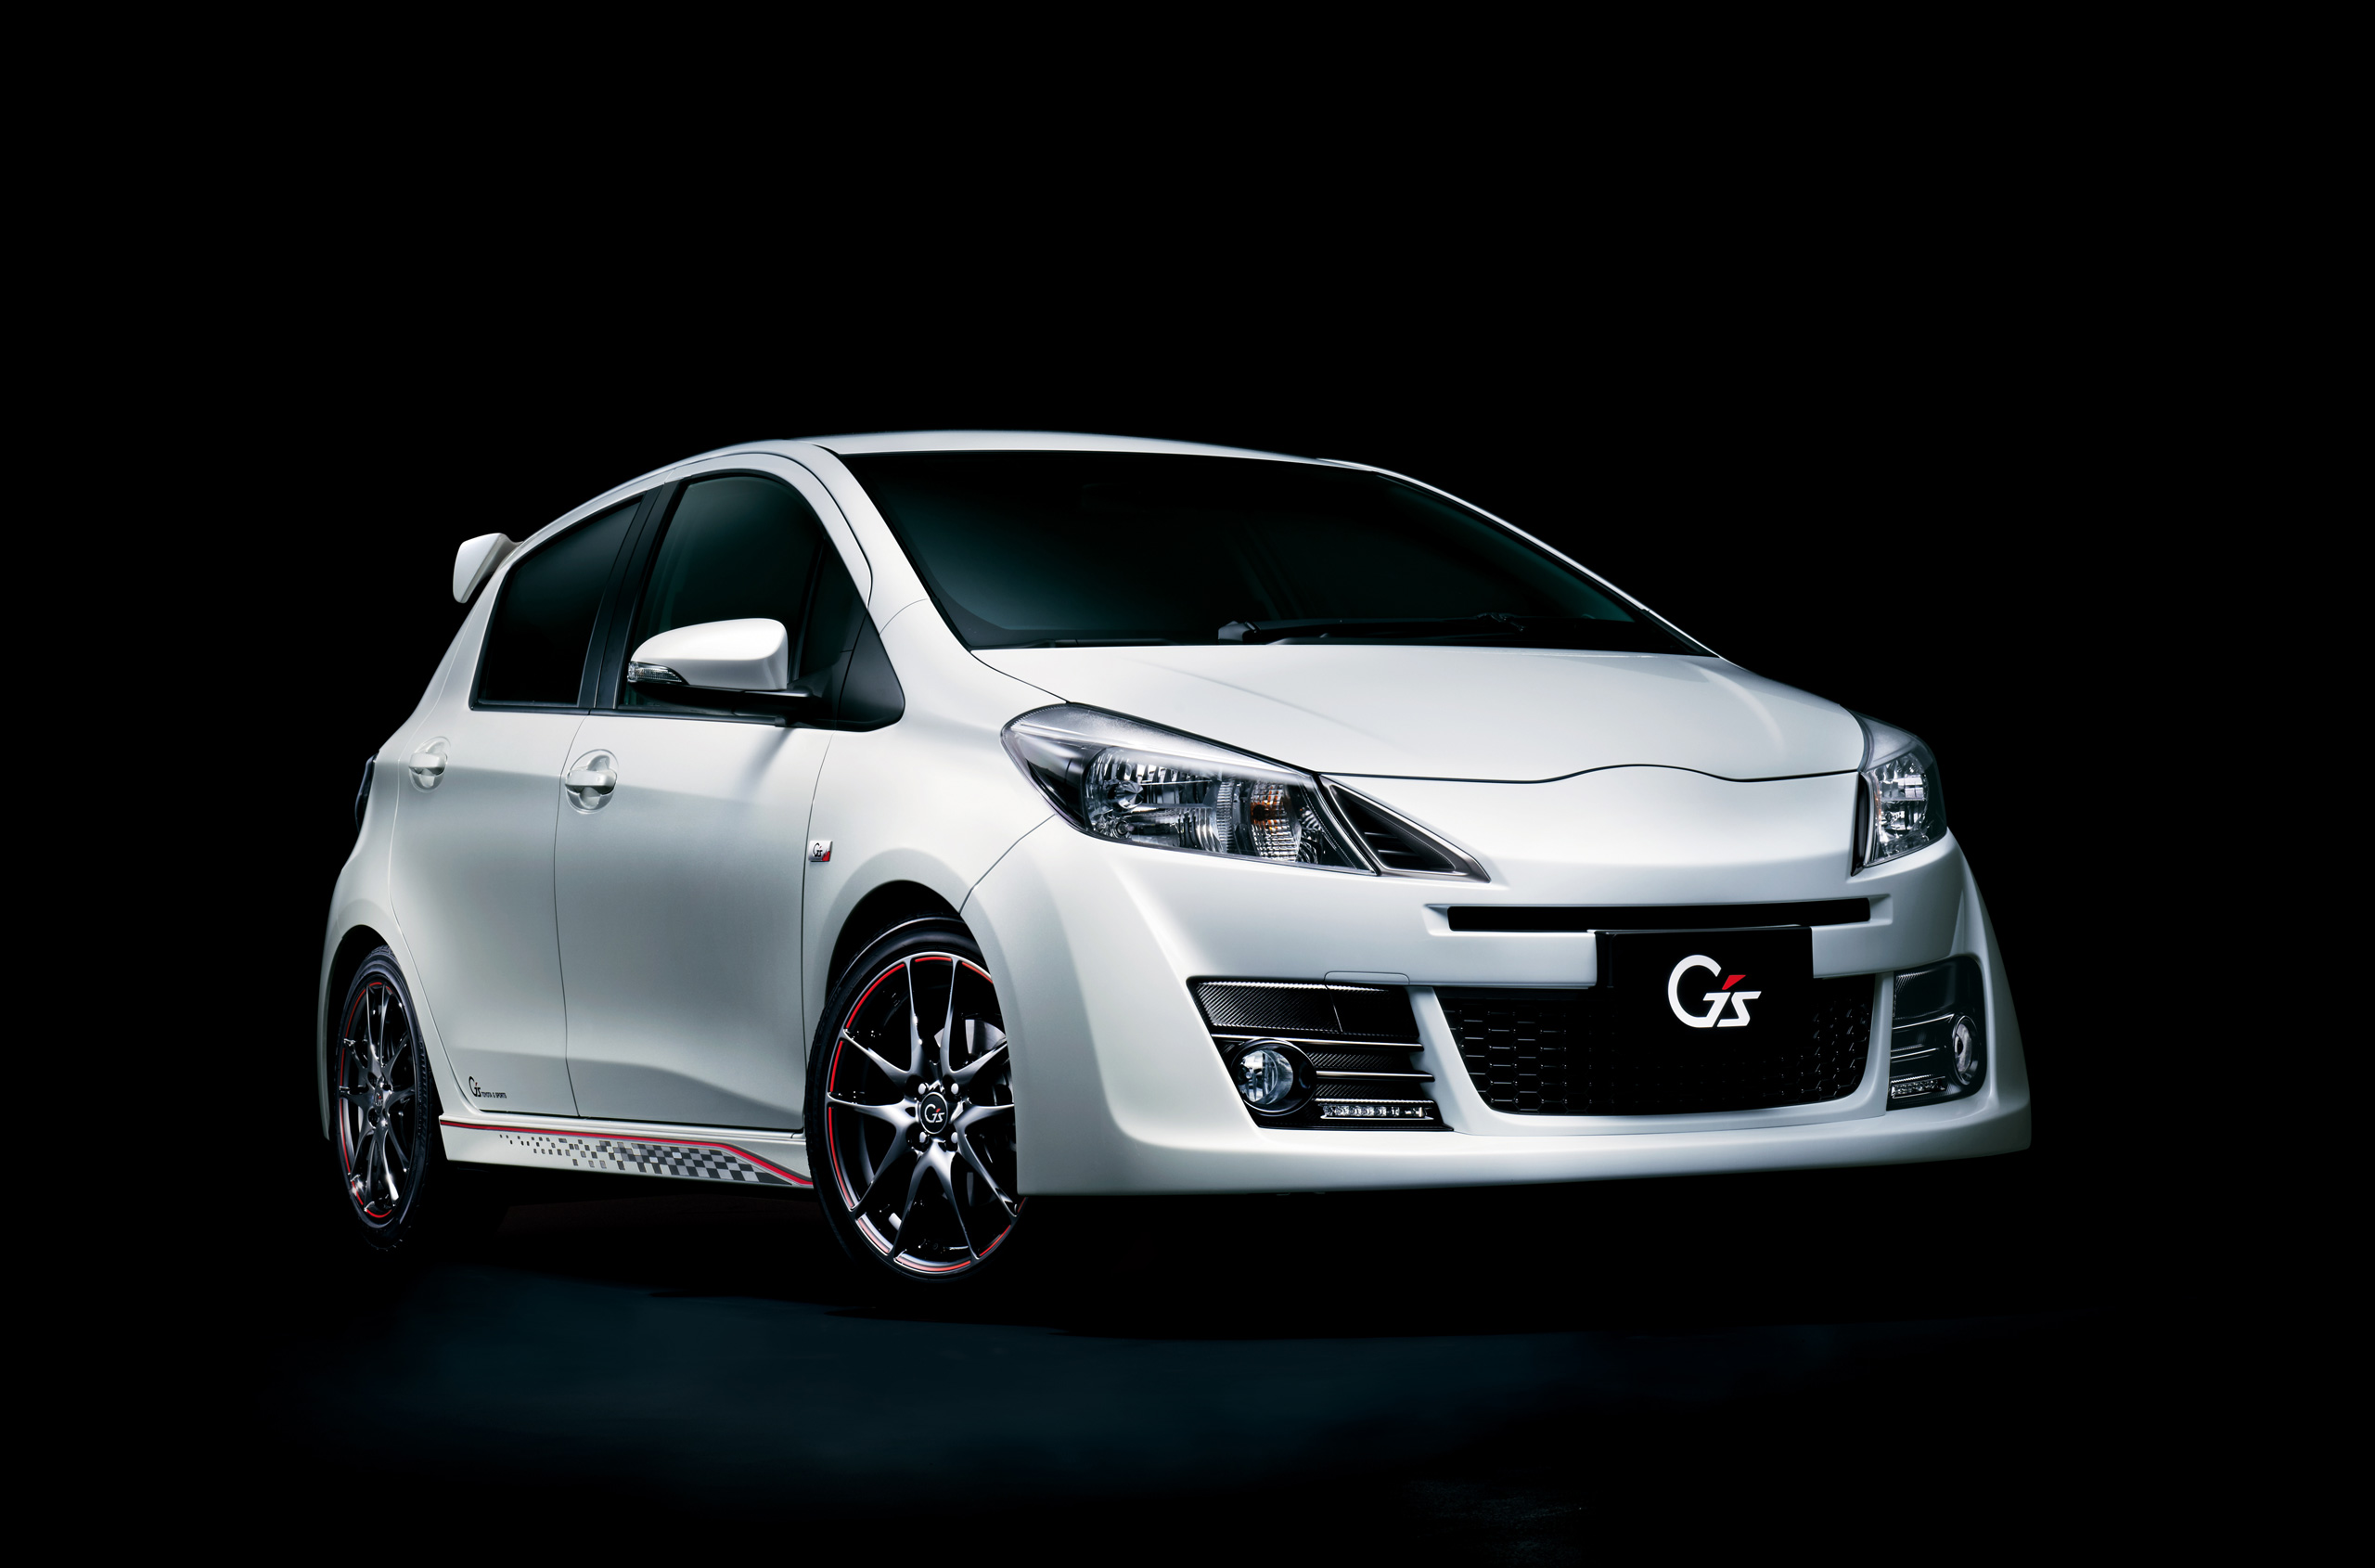 Toyota Yaris And Jdm Vitz Facelifted To Match The Aygo